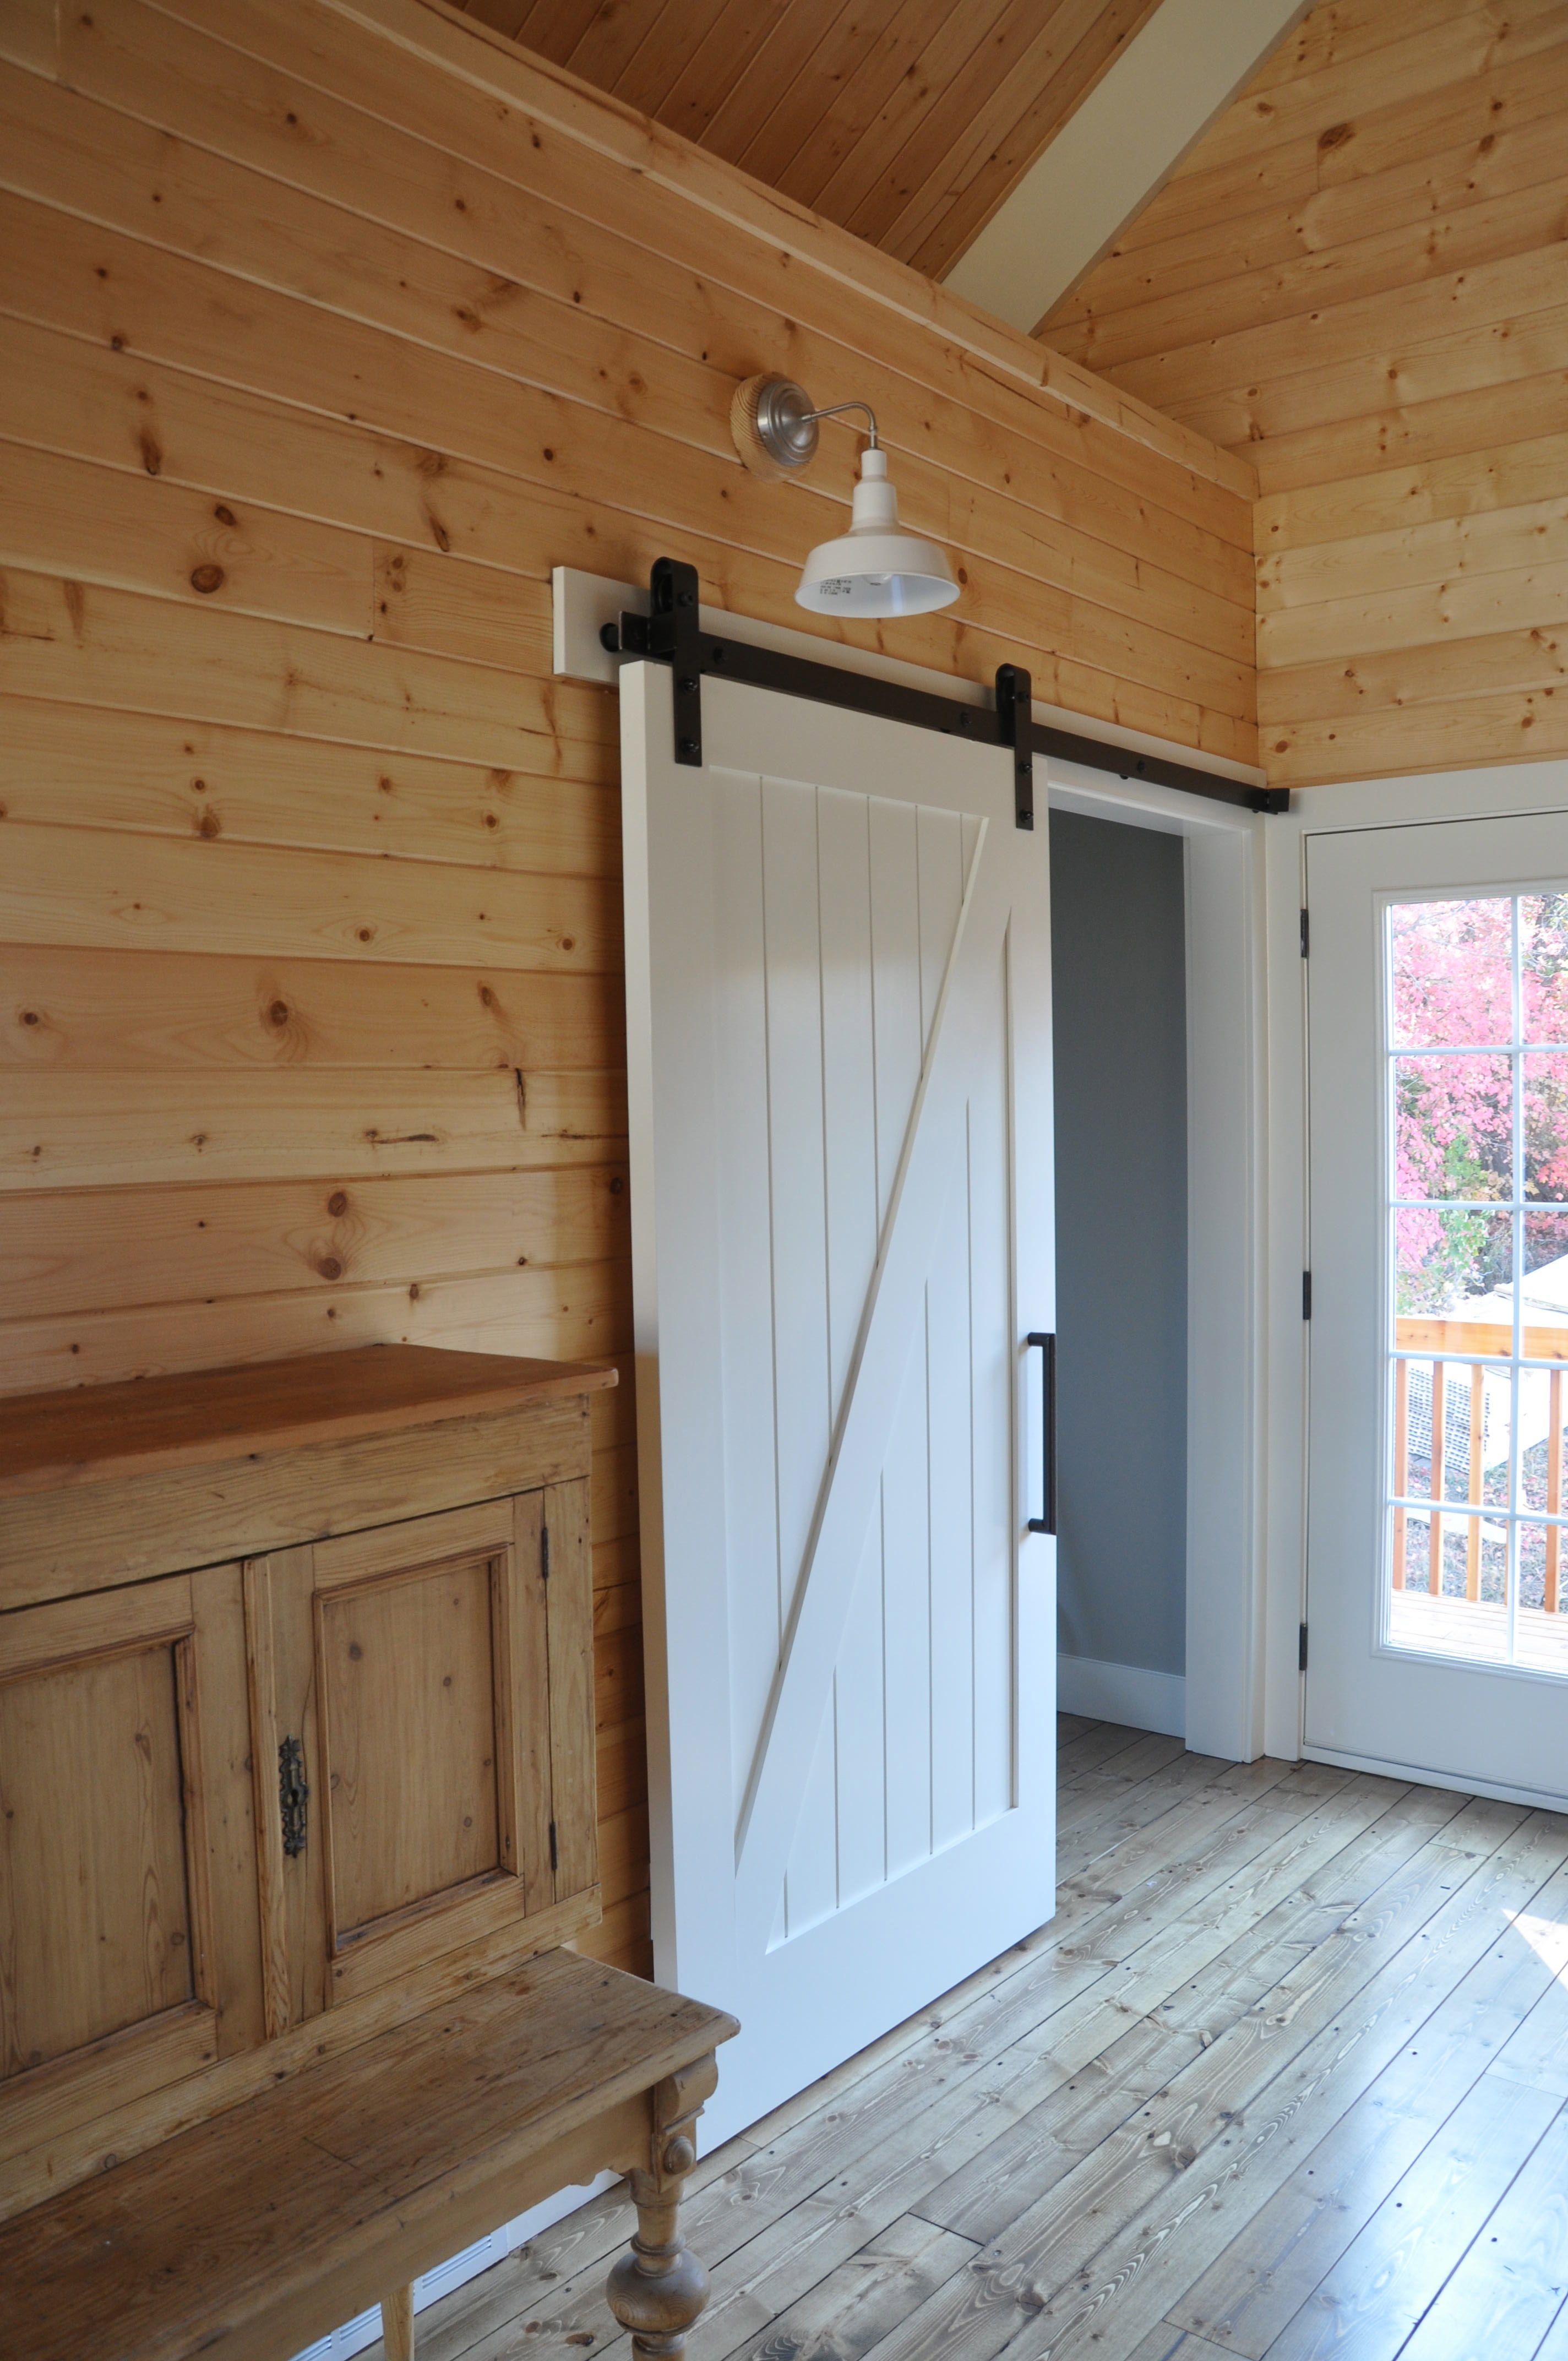 Farmhouse Barn Door Painted White With Black Hardware